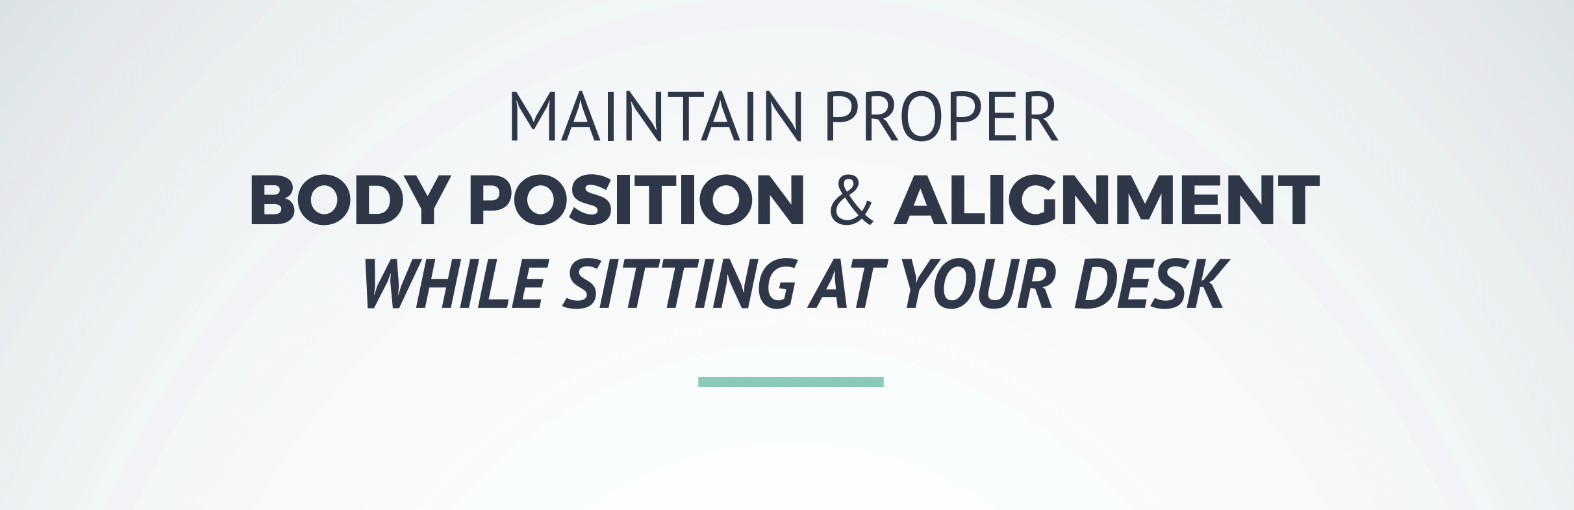 workstation body position reduces injury. Try Akridge & Akridge Chiropractic for pain relief.